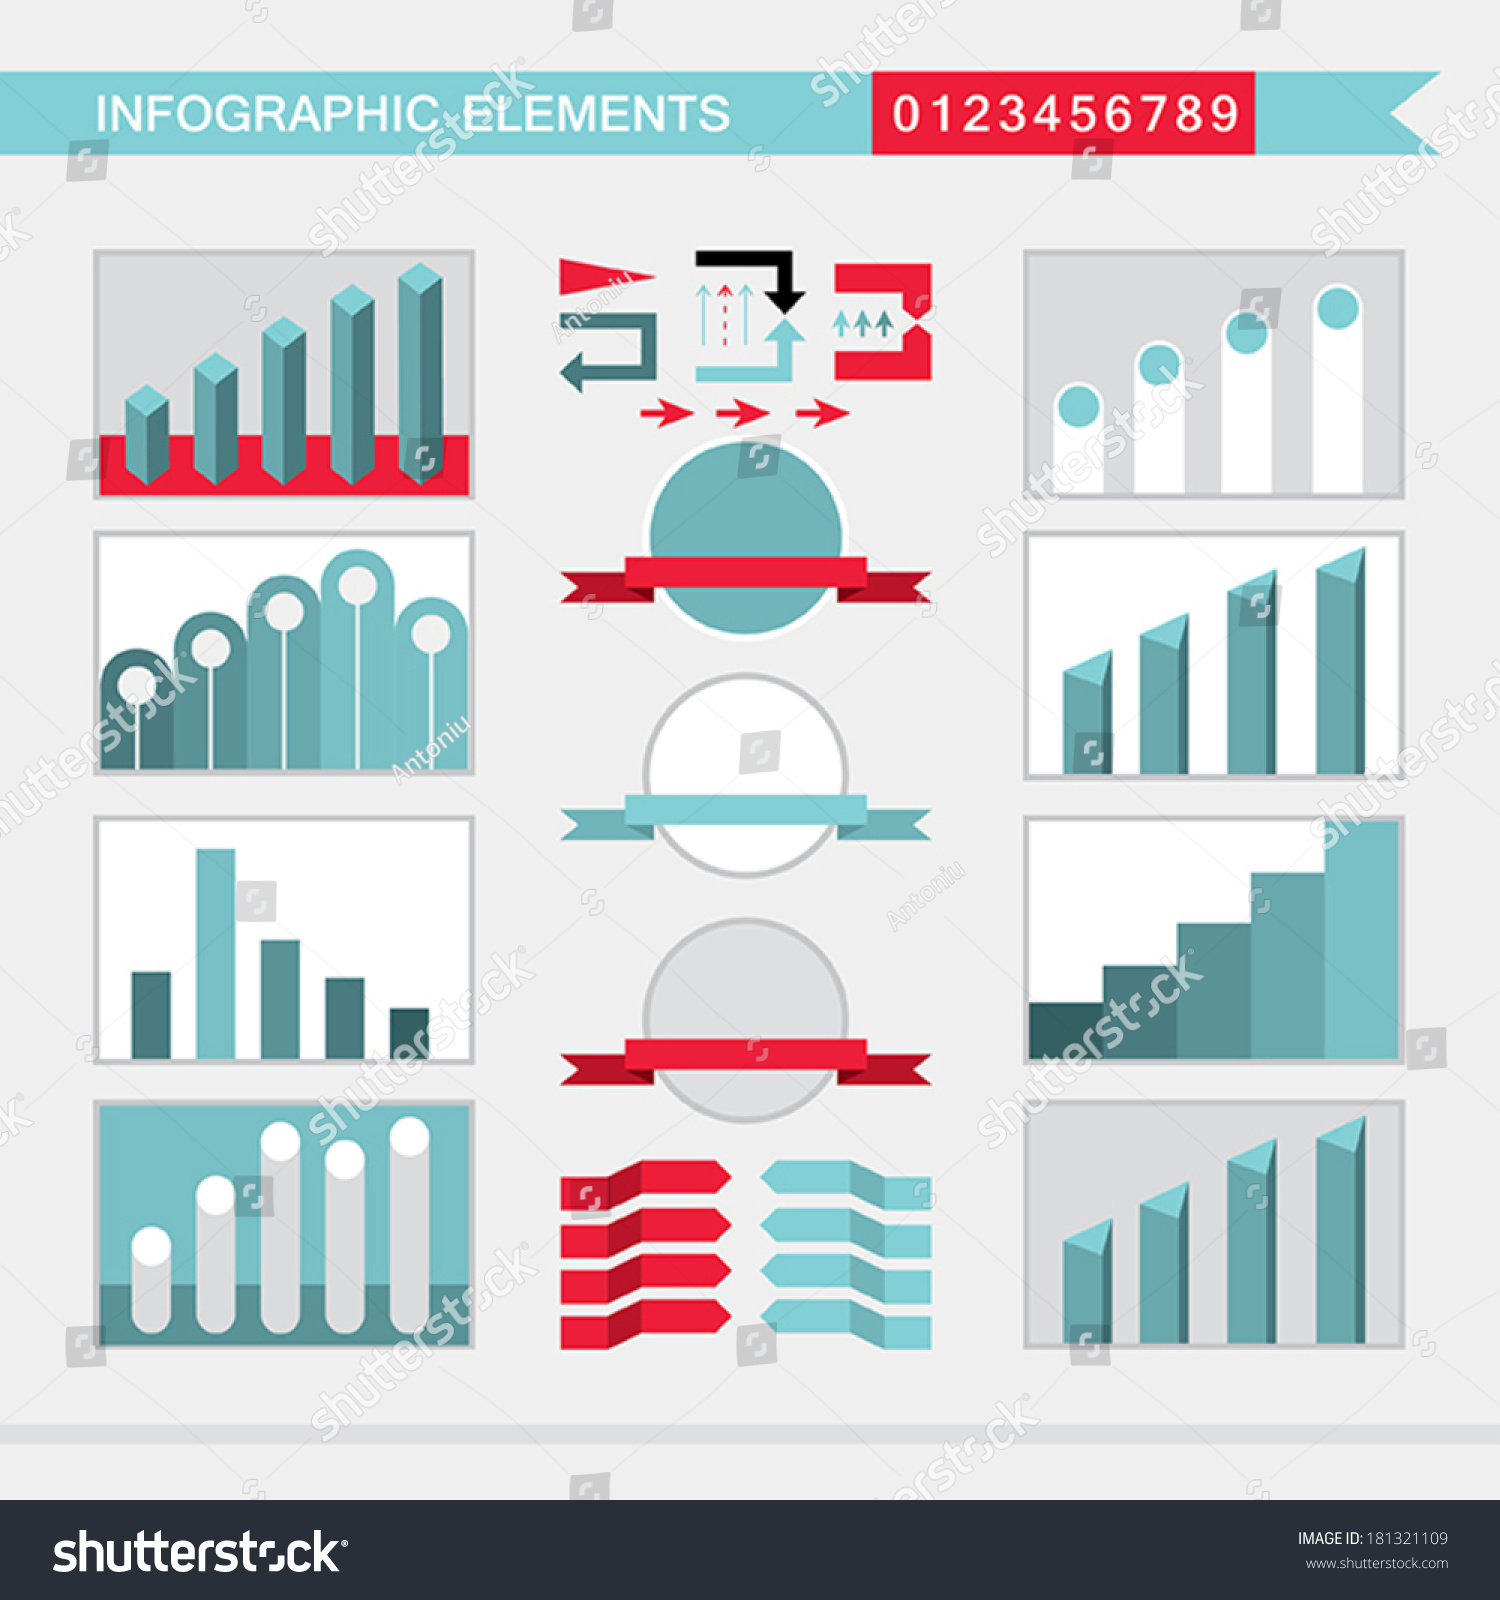 Infographic Elements Charts Graph Diagram Arrowssignsbars